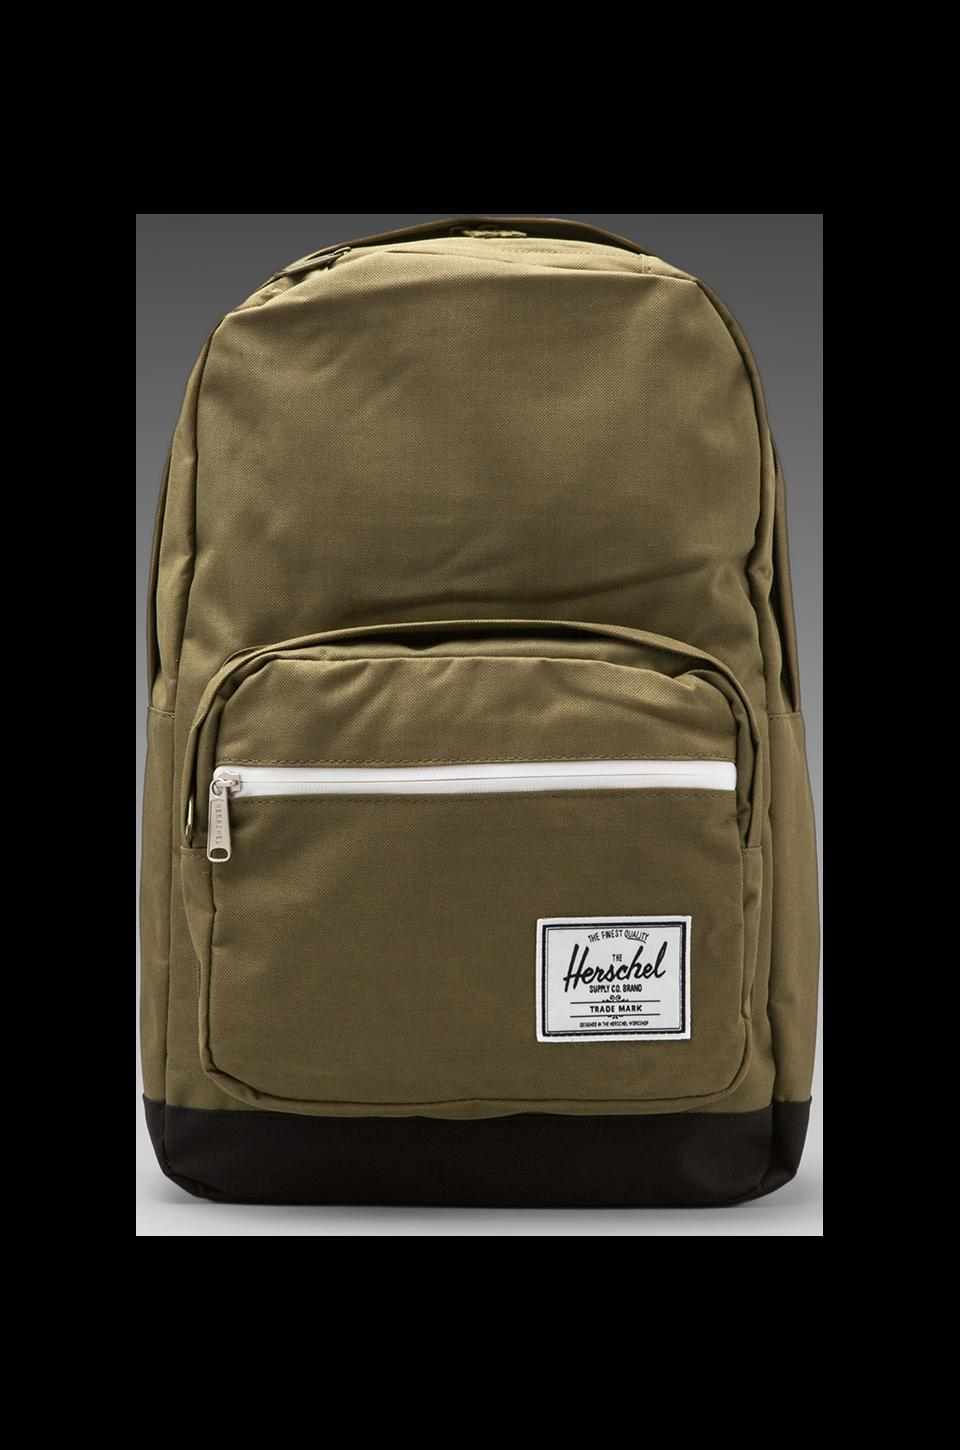 Herschel Supply Co. Pop Quiz Backpack in Army/Black